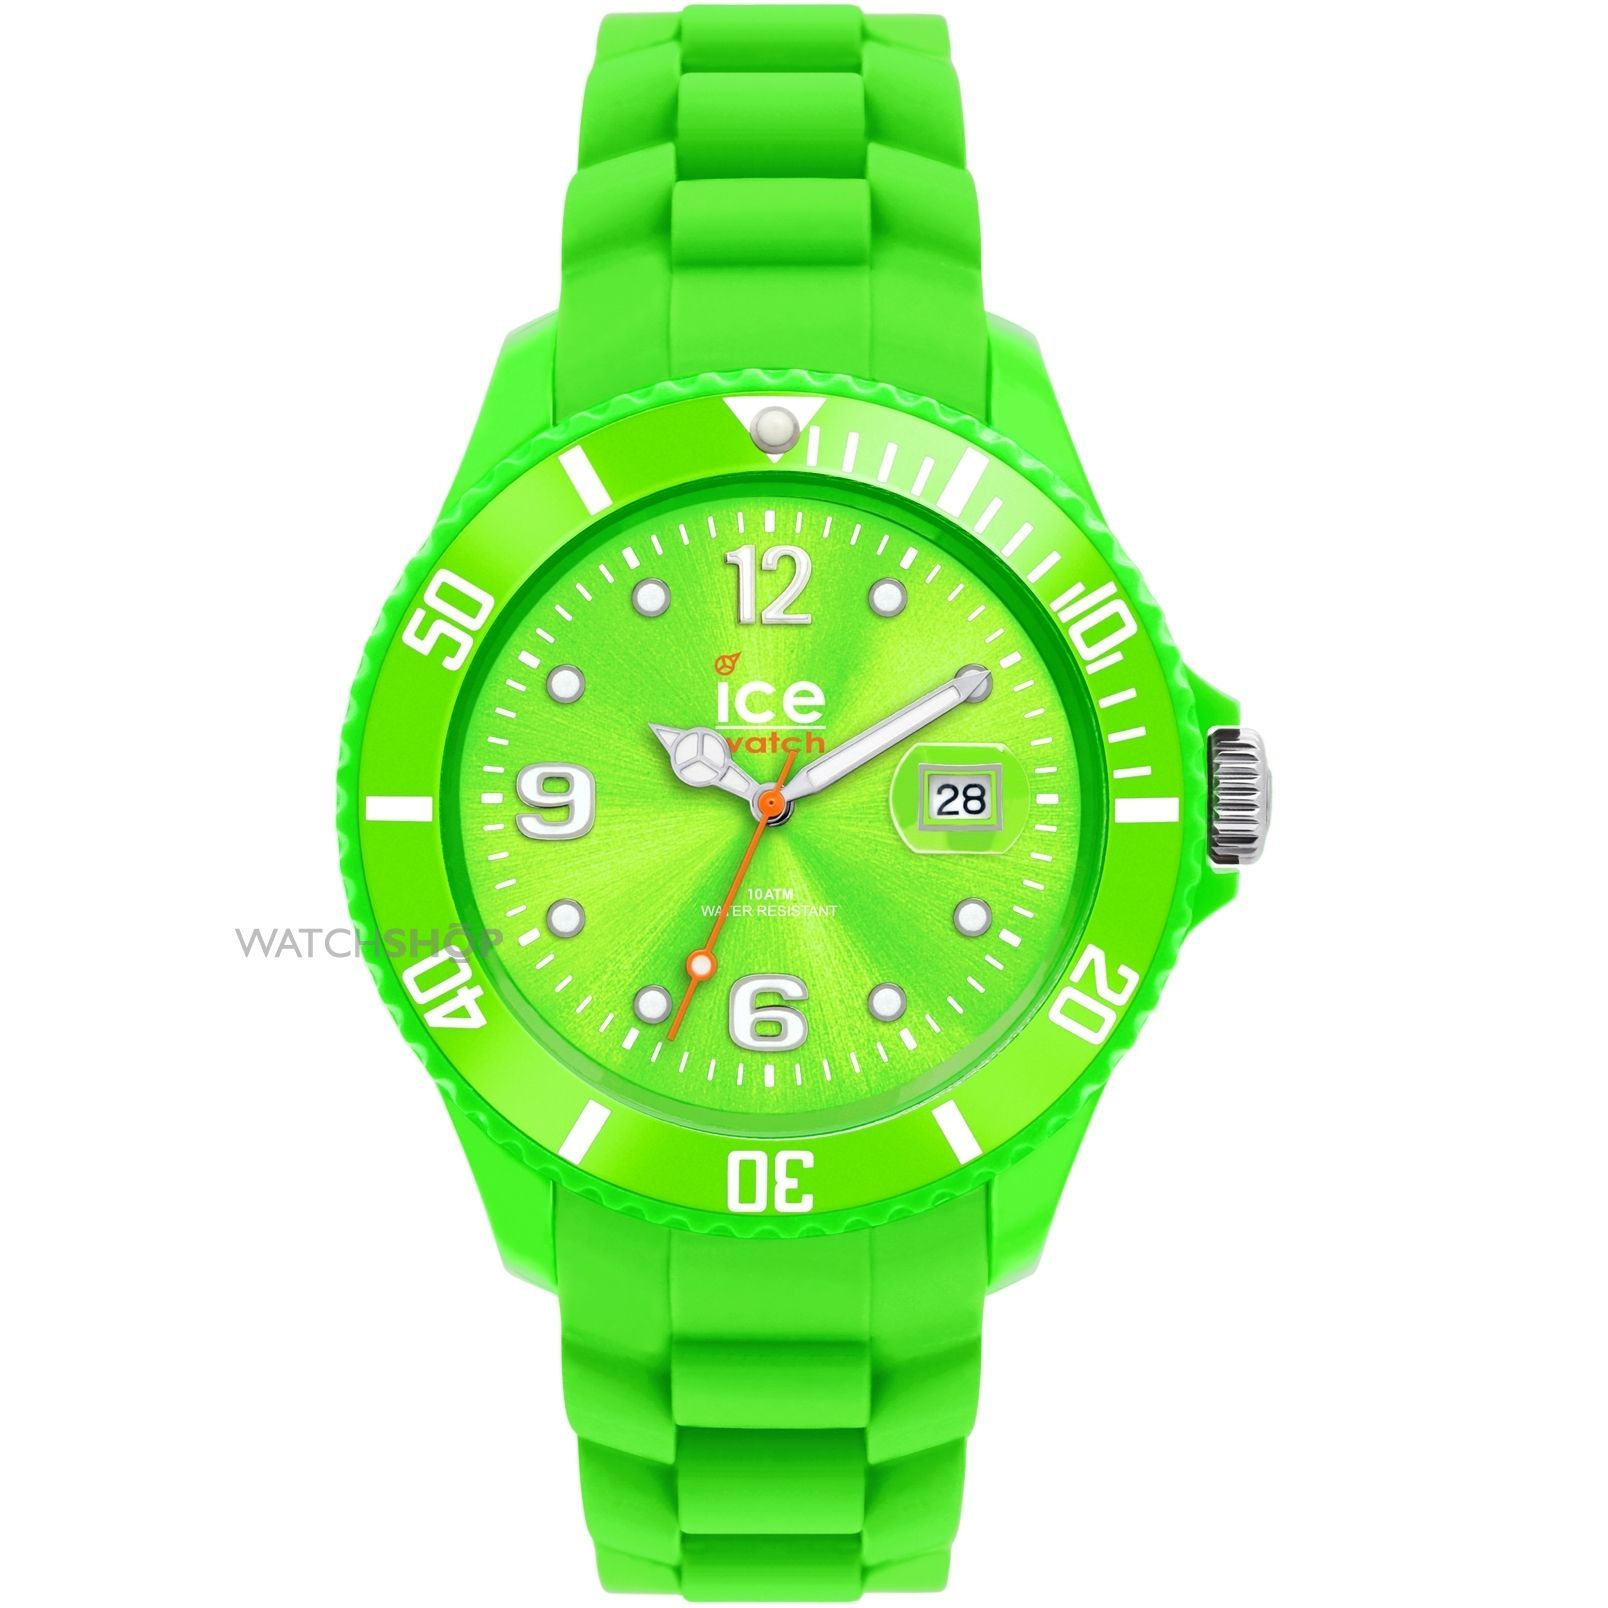 watches bezel glass original men for rubber quality automatic top high product hot mens sapphire clasp green sell wristwatch buy watch sale ceramic